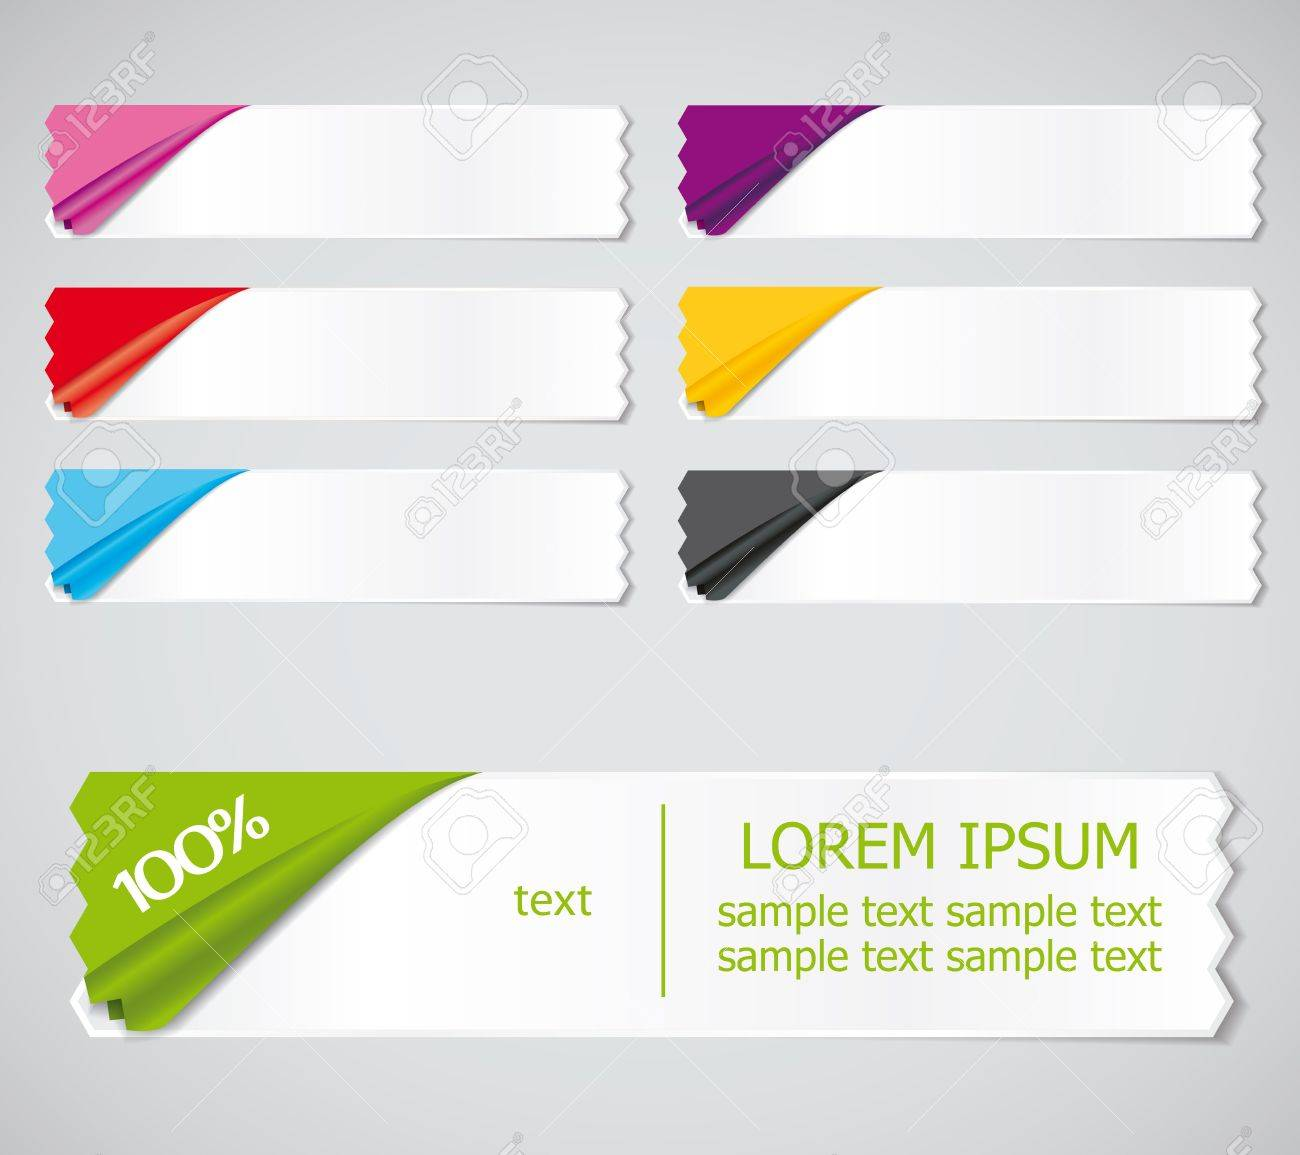 set of colored stickers, ribbons options for different samples Stock Vector - 13885287